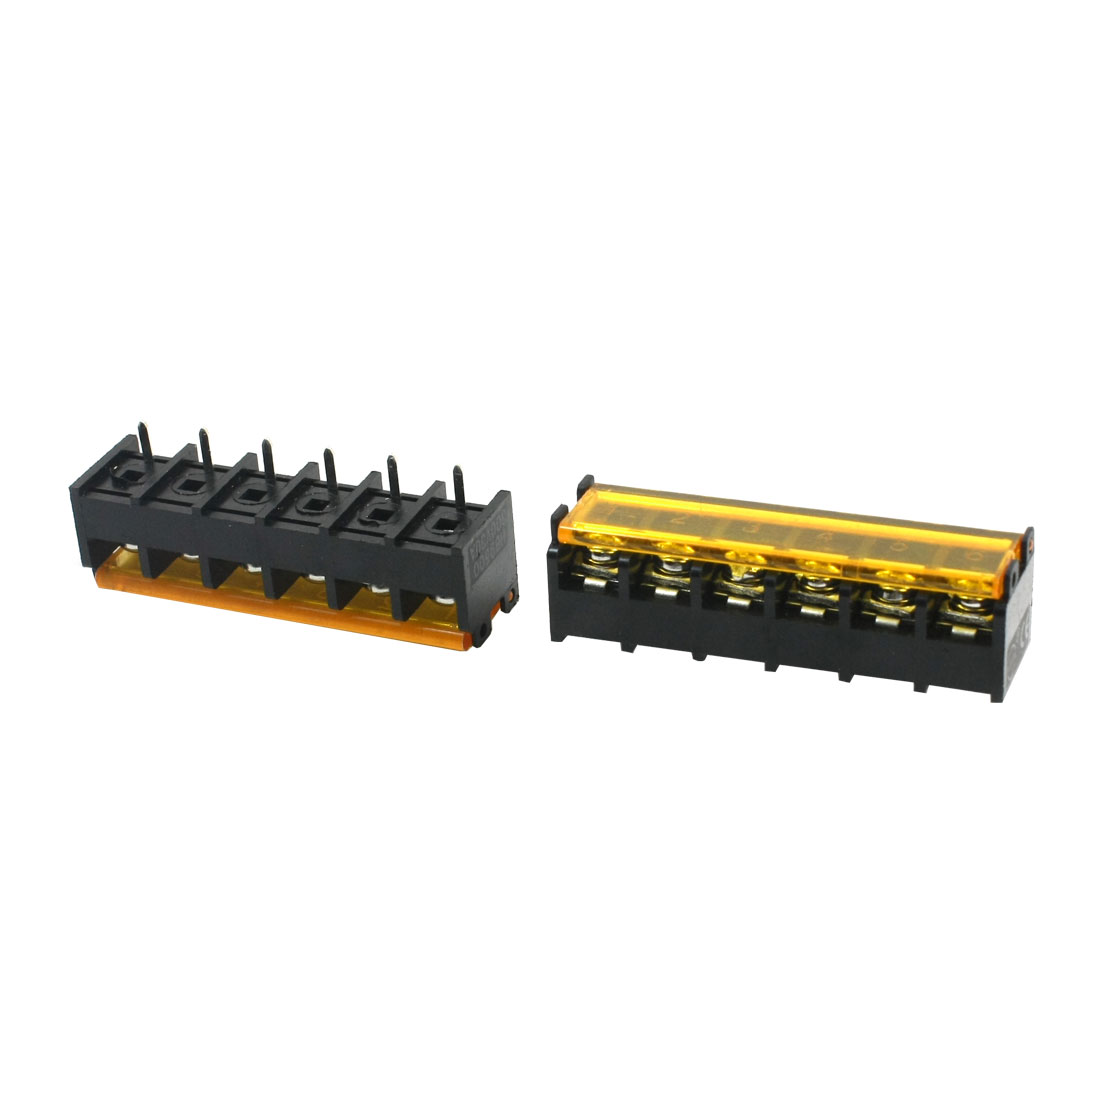 2 Pcs 9.5mm Pitch 6Pin PCB Mounting Pluggable Type Black Plastic Screw Terminal Barrier Block Connector 300V 30A